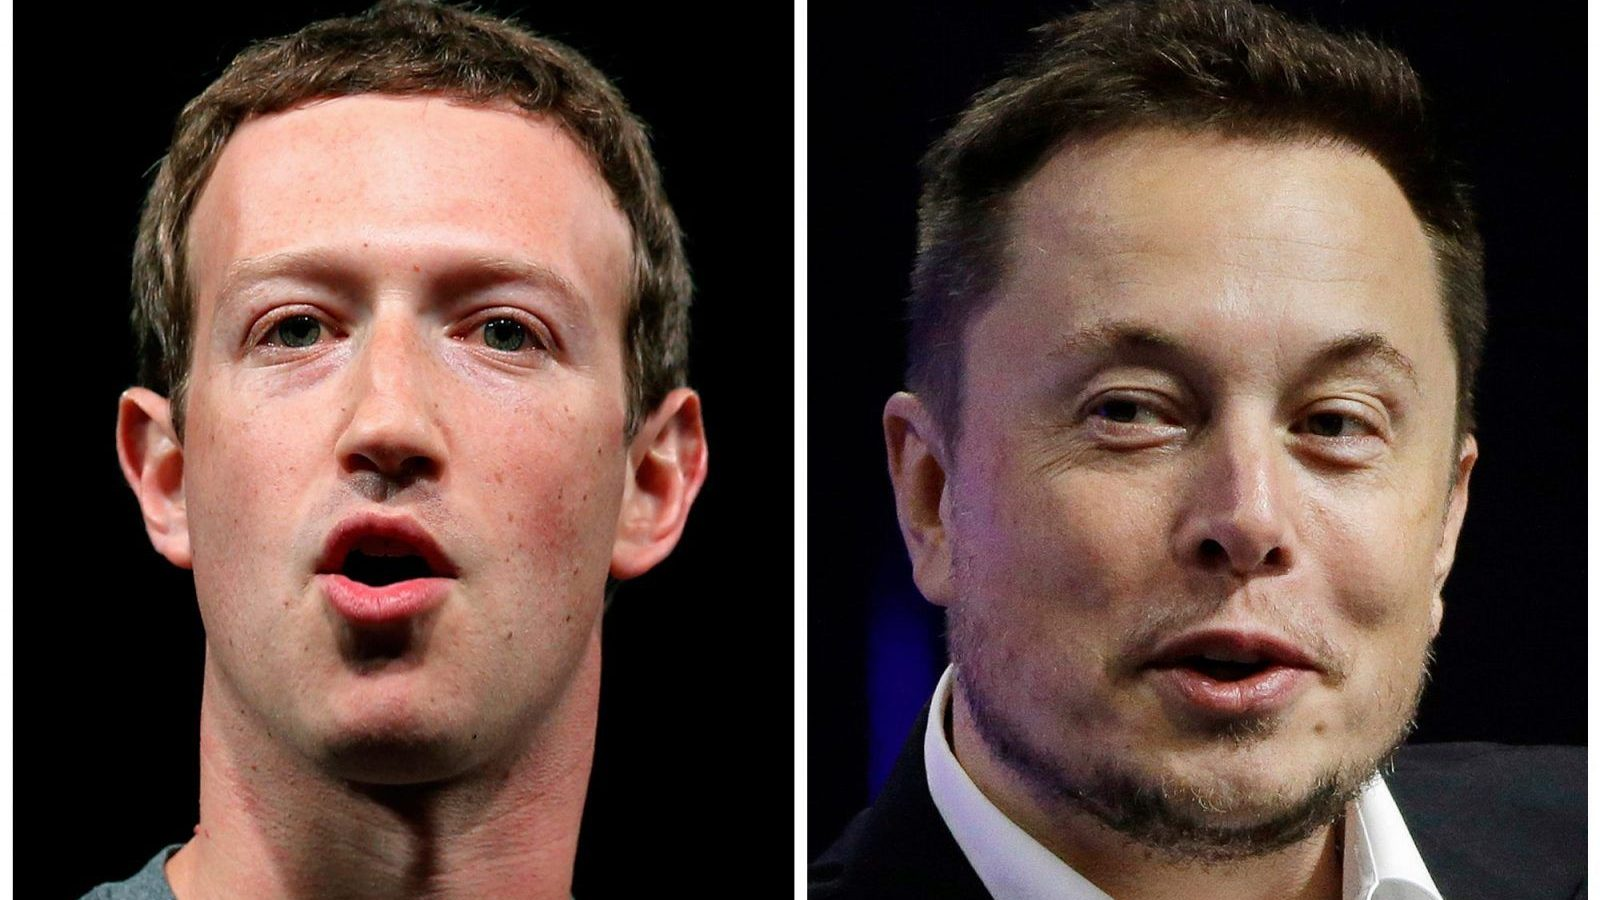 This combo of file images shows Facebook CEO Mark Zuckerberg, left, and Tesla and SpaceX CEO Elon Musk. An online smackdown between tech titans Zuckerberg and Musk over the possible threat of artificial intelligence underlines how little most people know about the rapidly advancing technology.